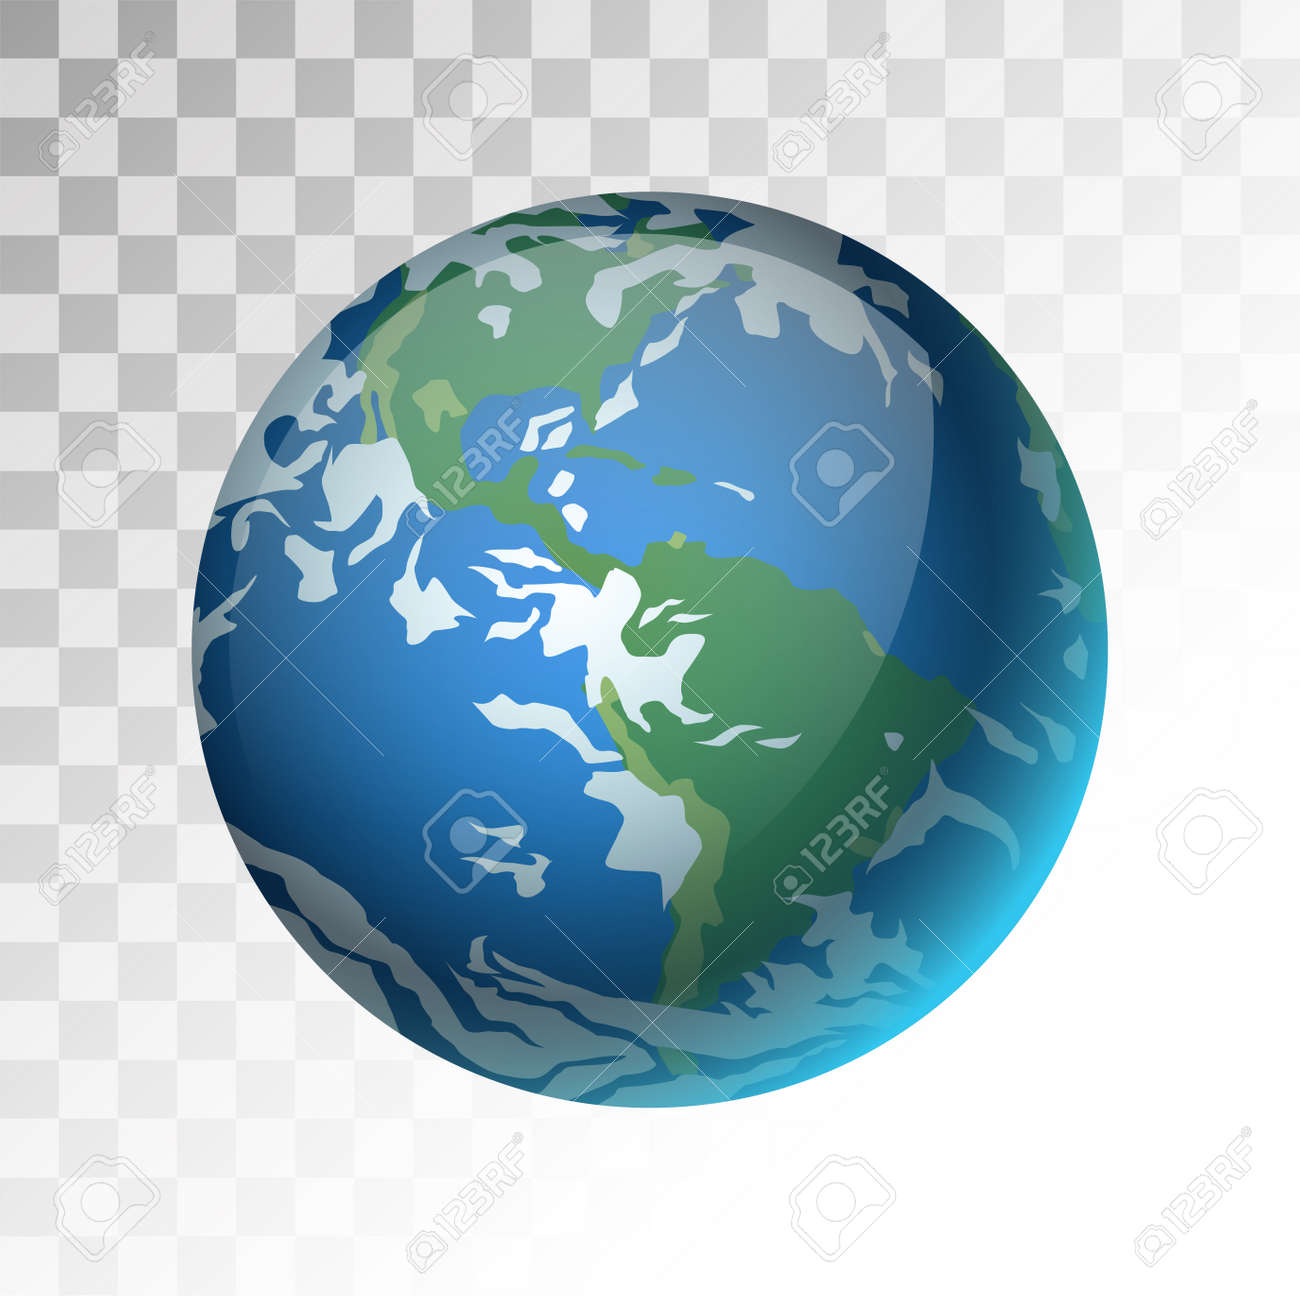 Earth Planet 3d Vector Illustration Globe Earth Texture Map